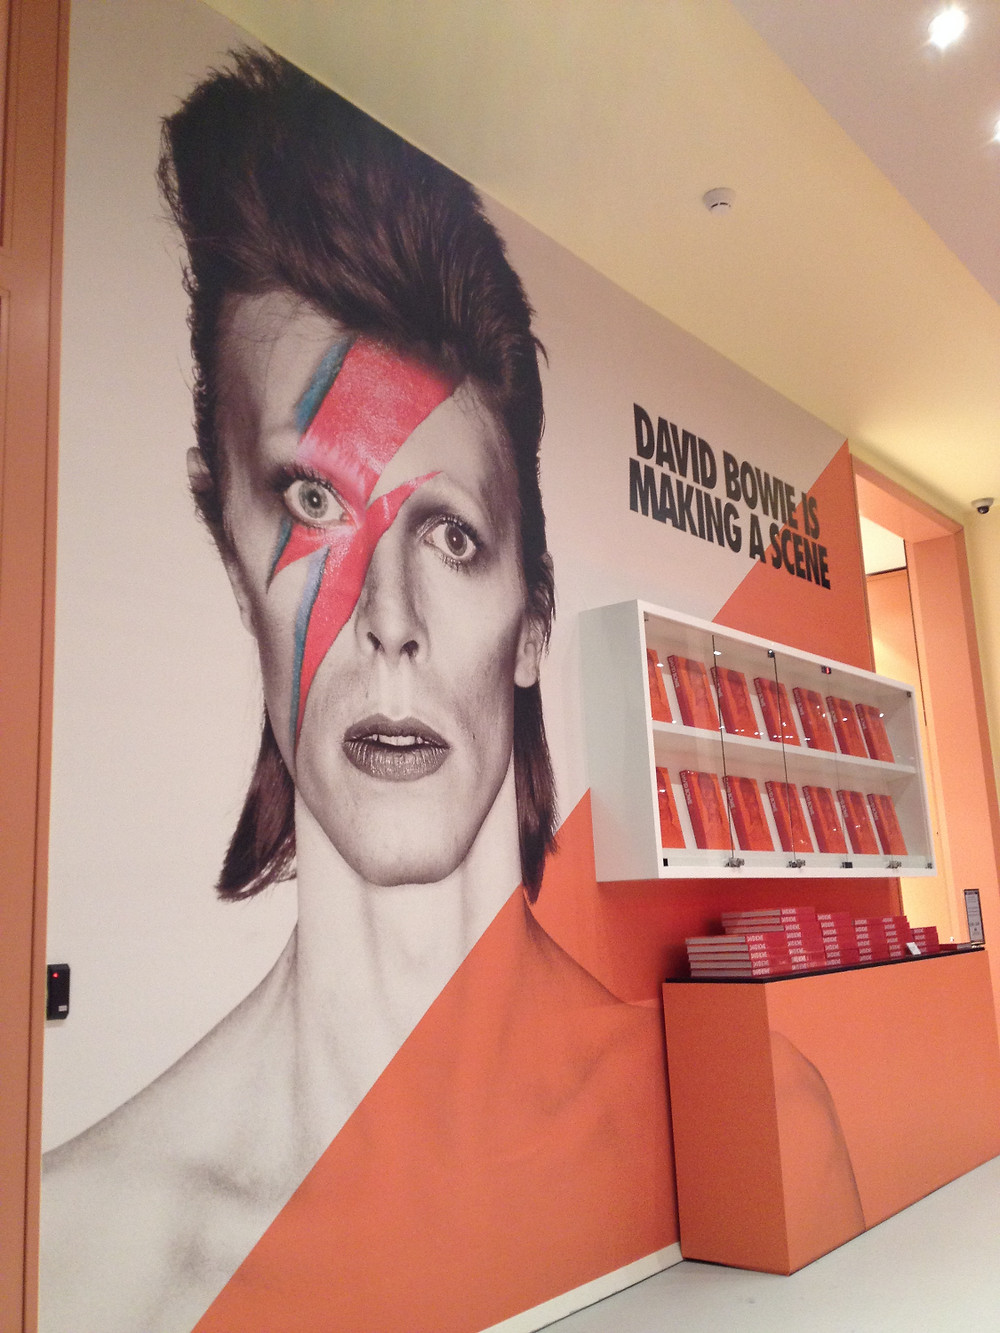 David Bowie Is Groningen